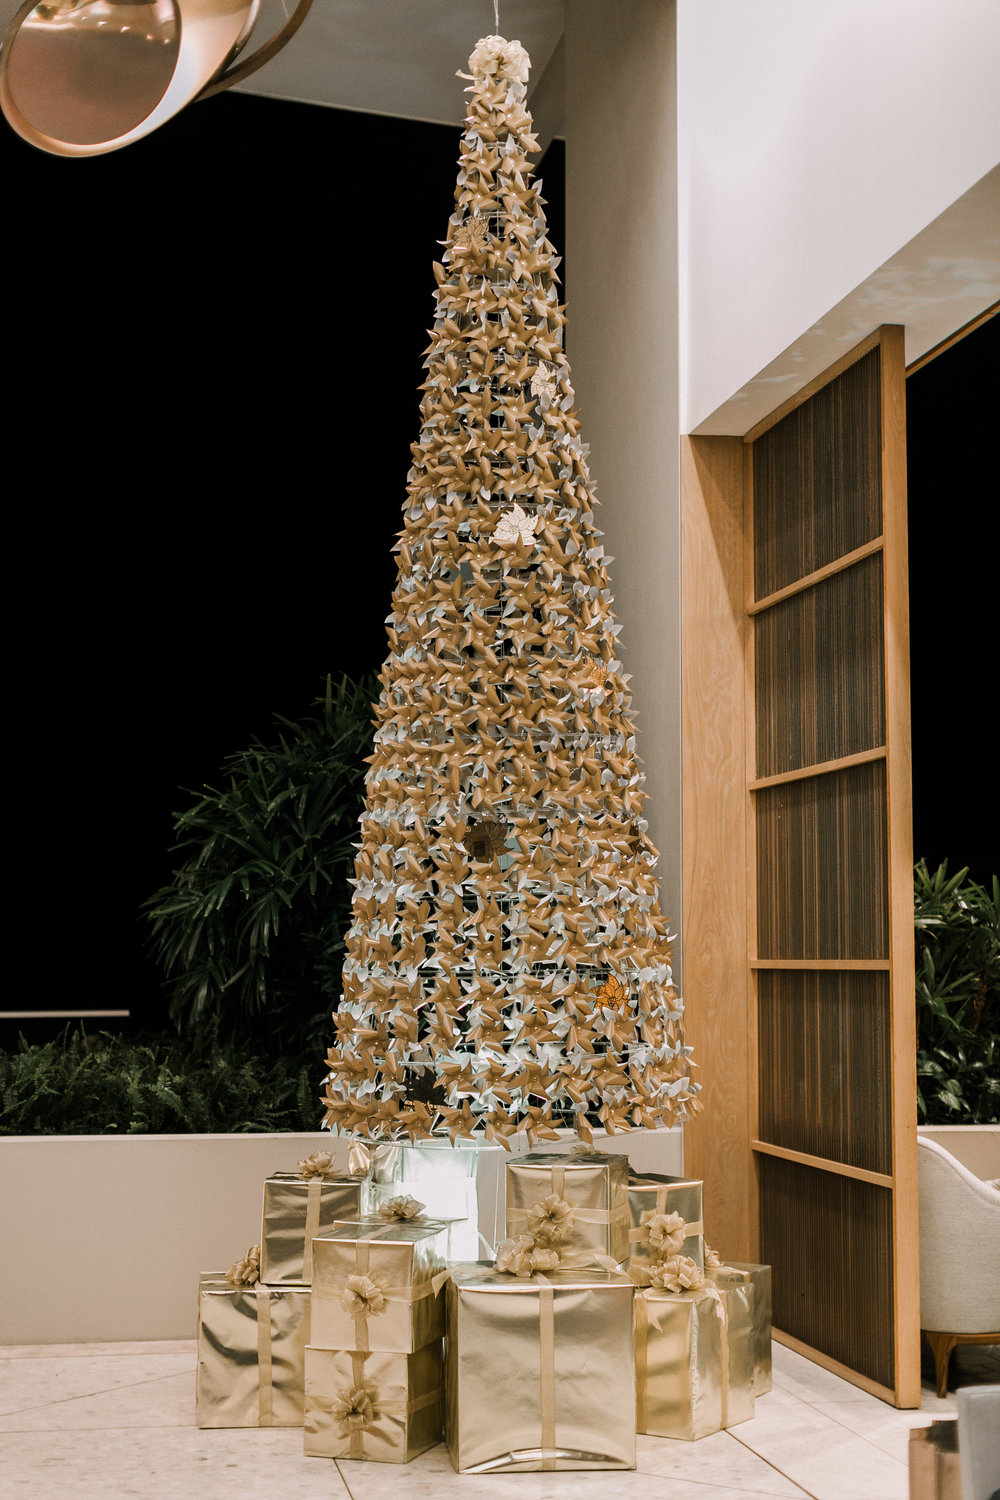 Curate-Ritz-Holiday-Lobby-Tree.jpg